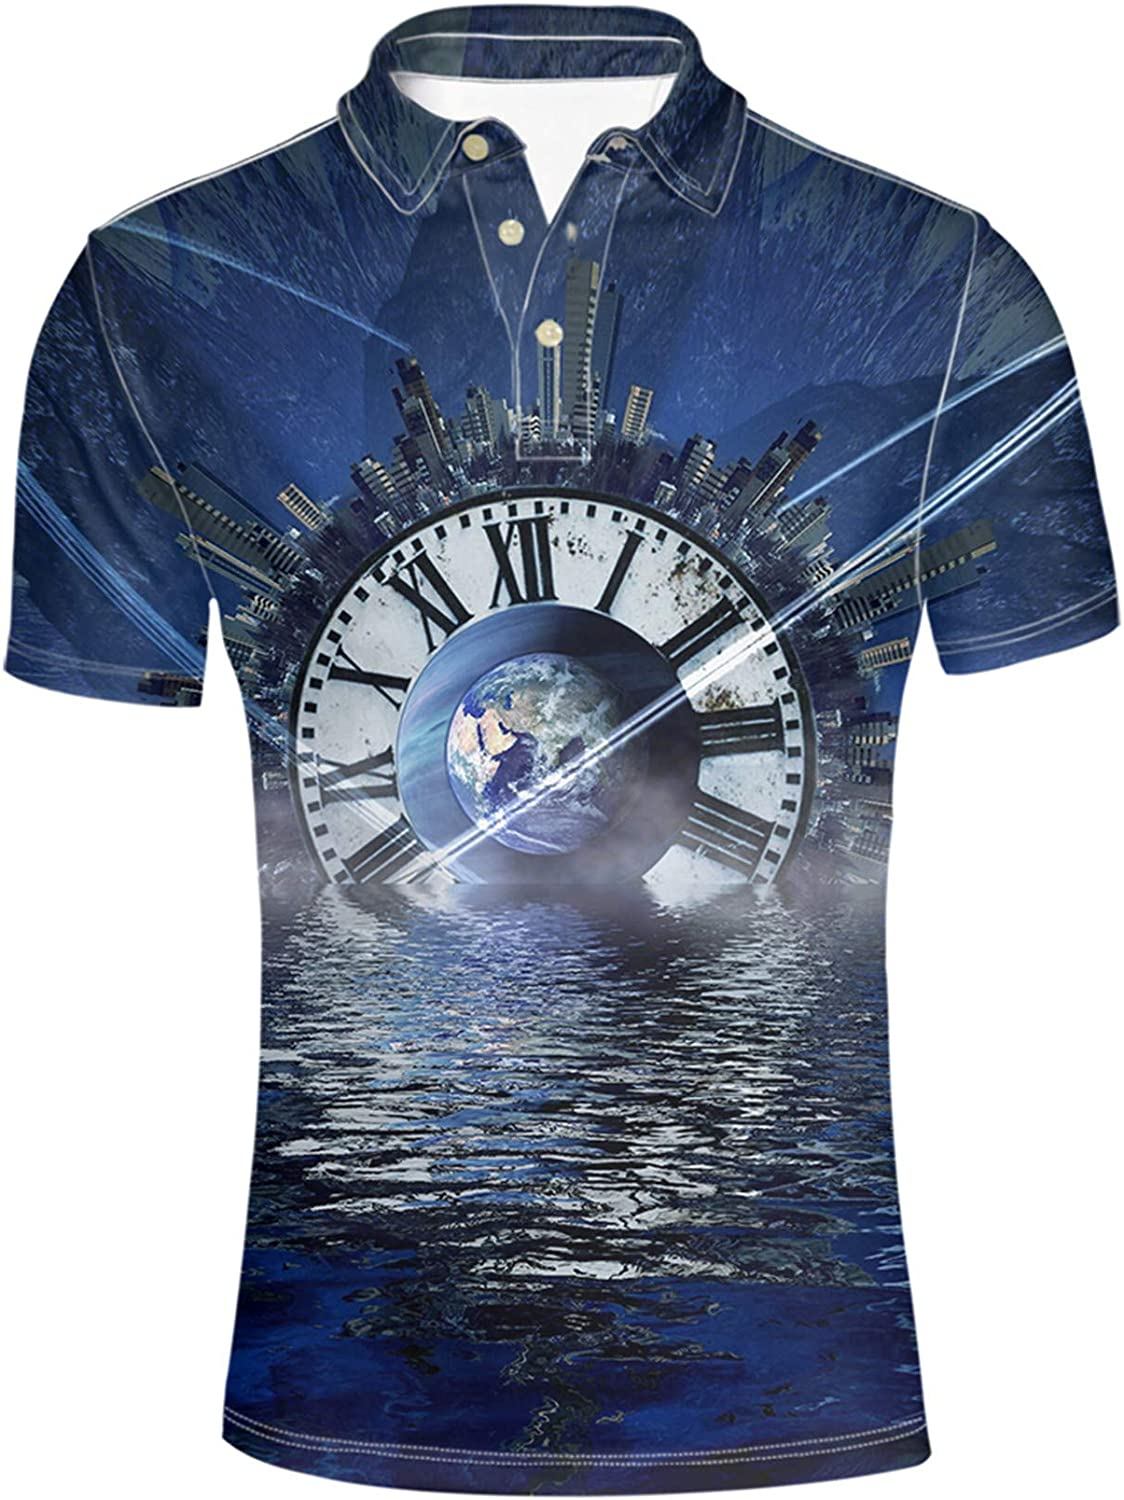 discount HUGS IDEA Safety and trust Galaxy Star Stylish Men's Slim Short Fit Sleeves Shirt